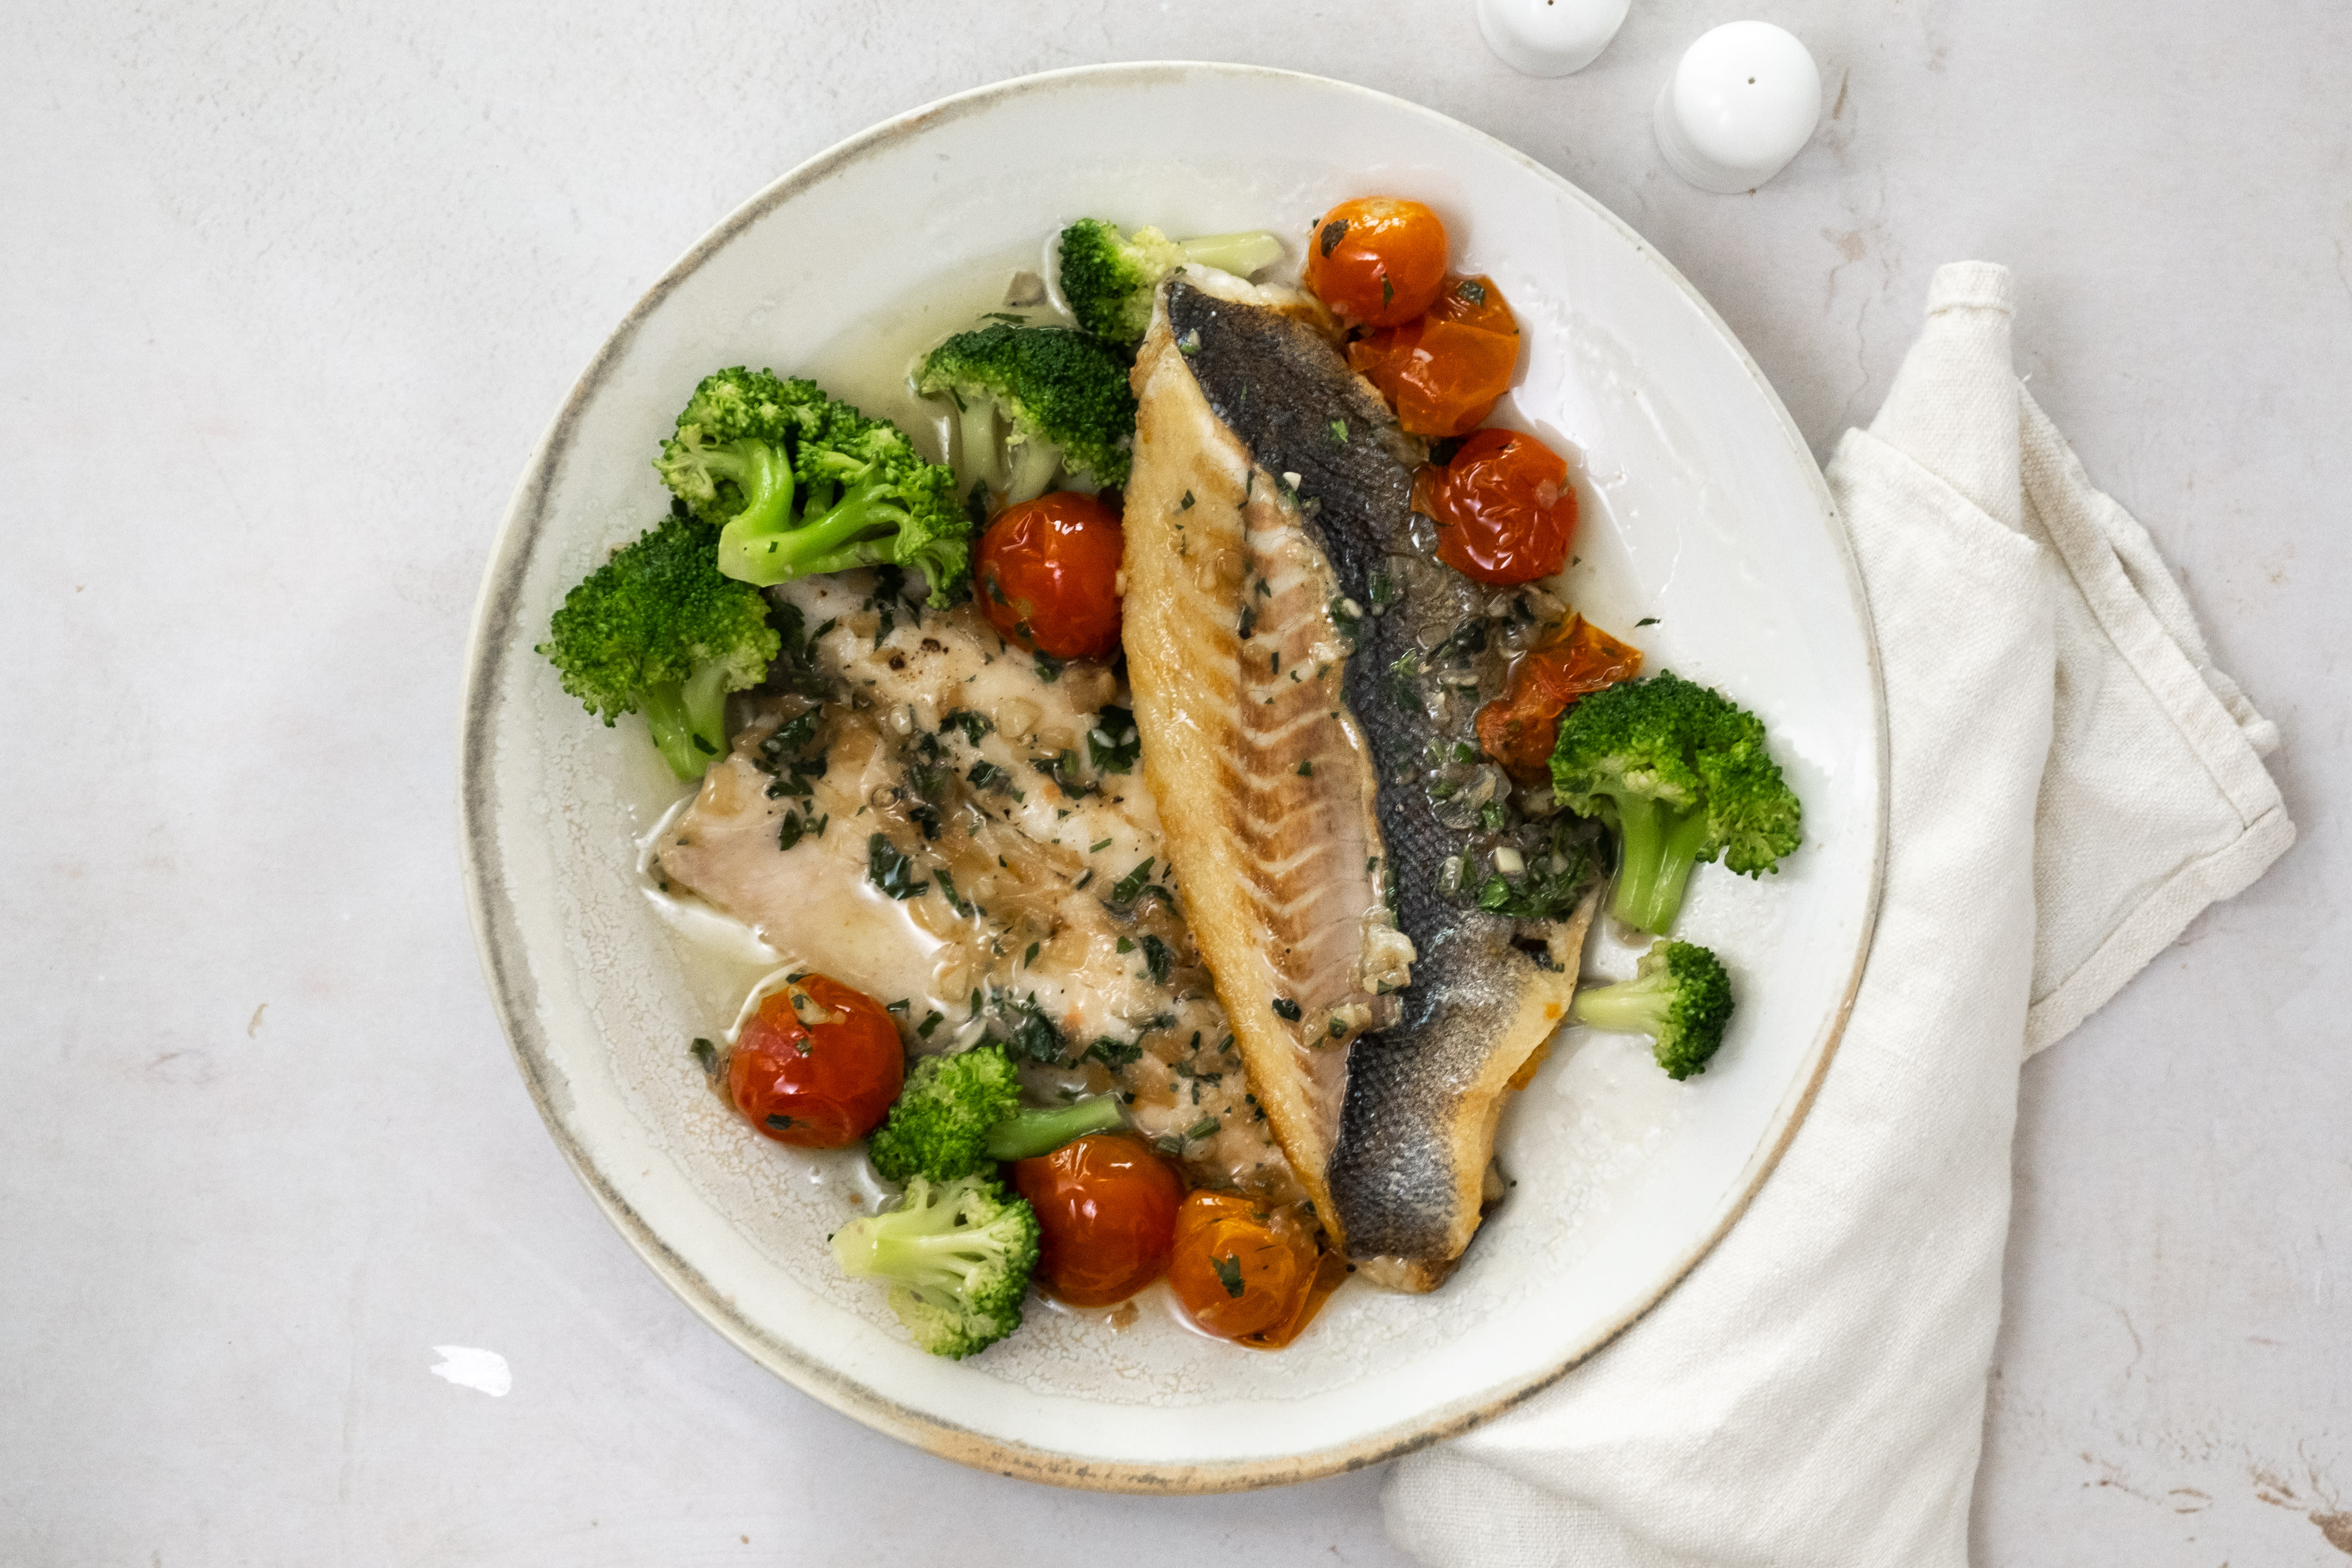 Provencale Baked Seabass with Steamed Broccoli